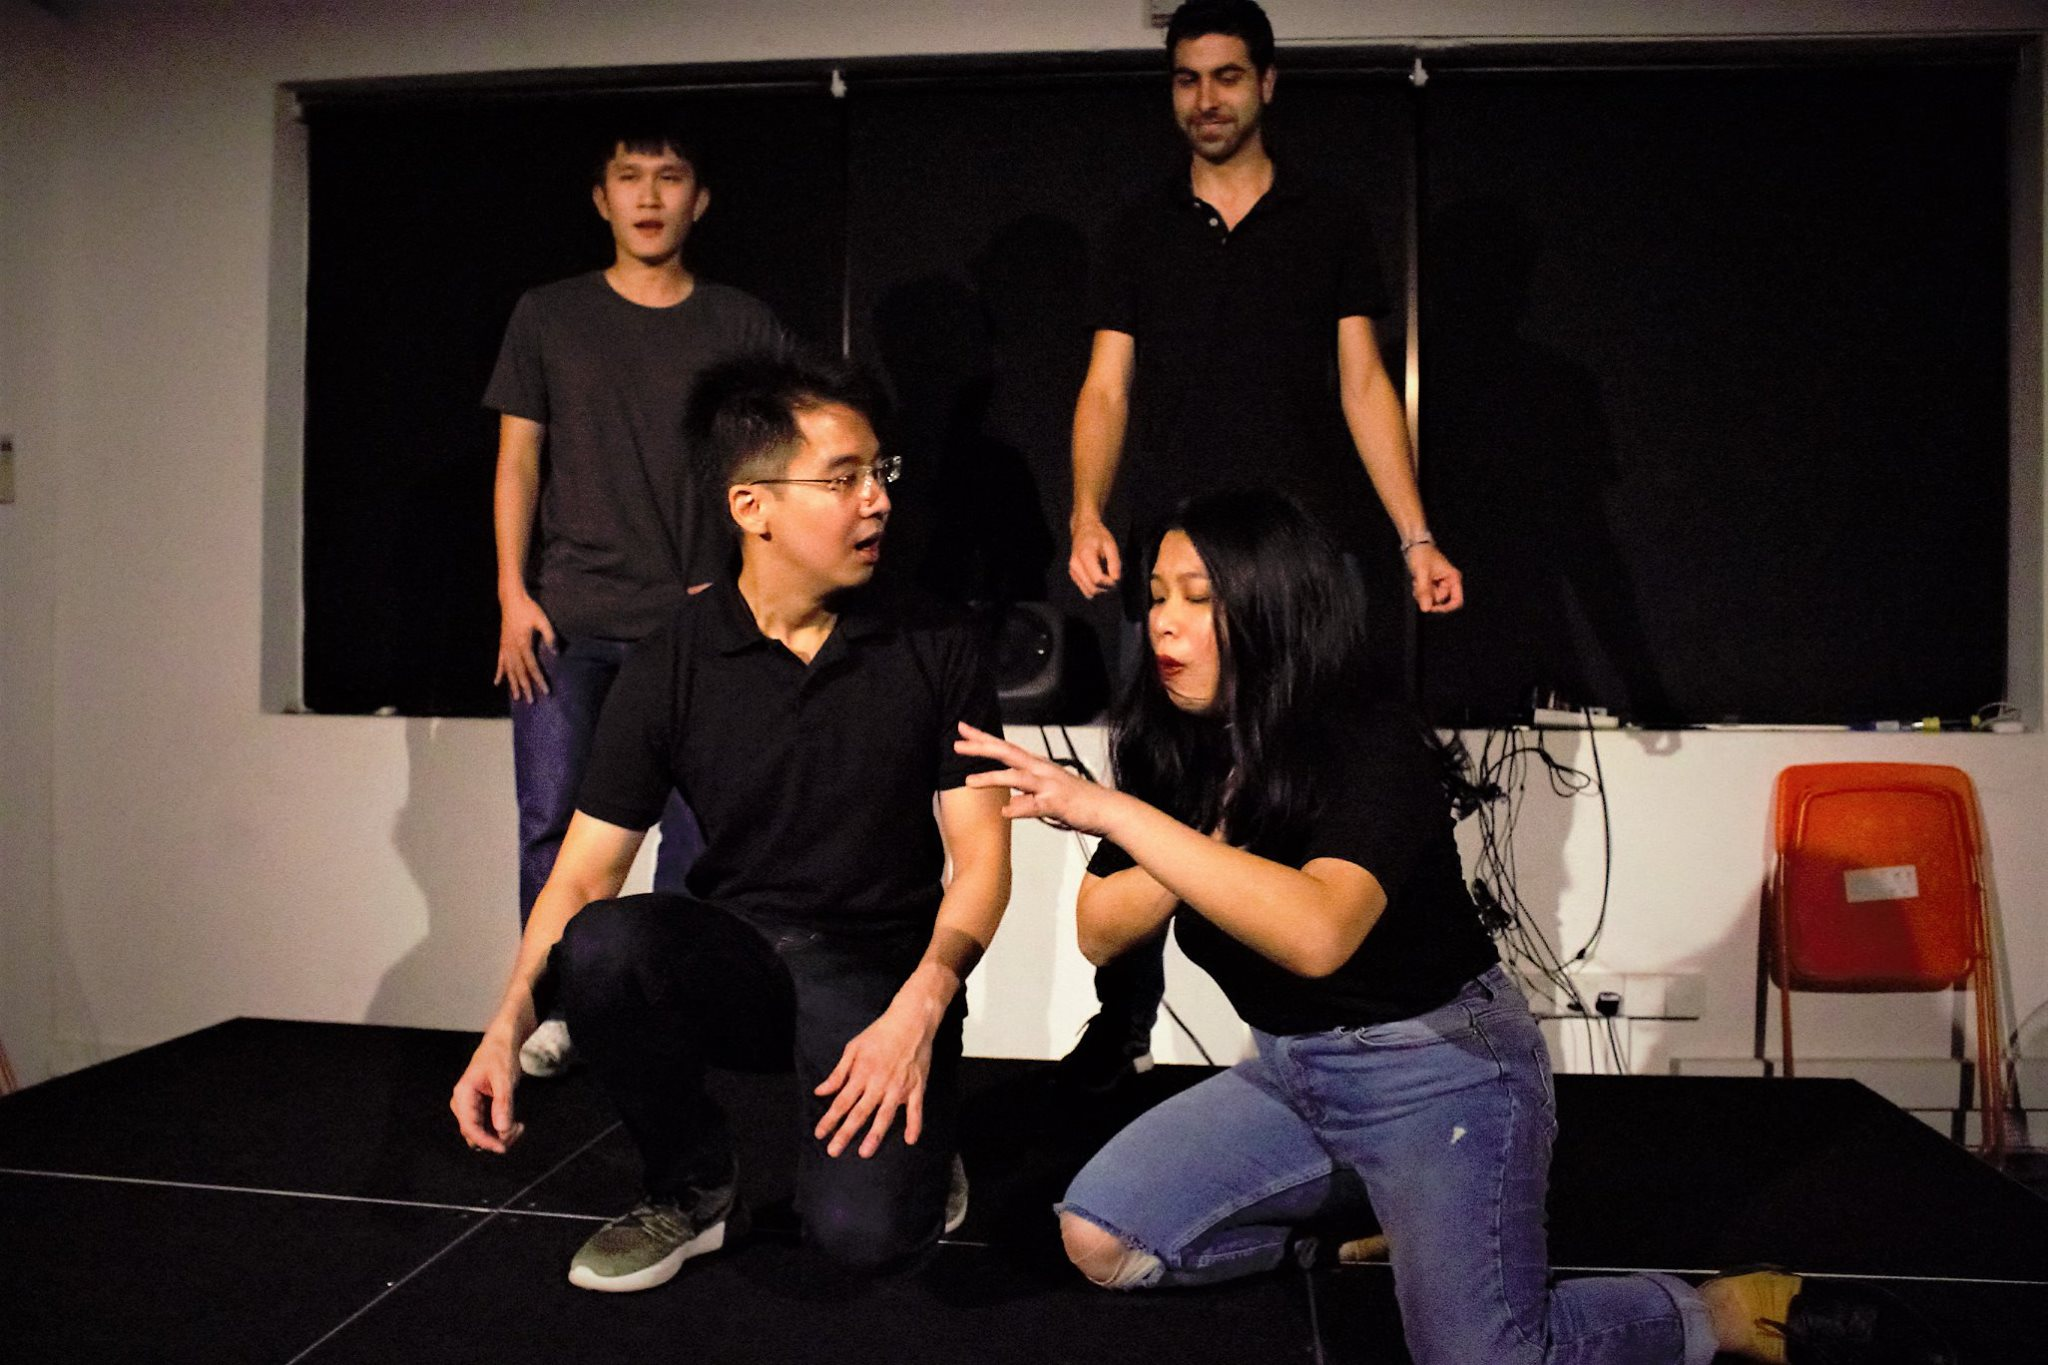 Photo courtesy: Singapore Improv Festival FB